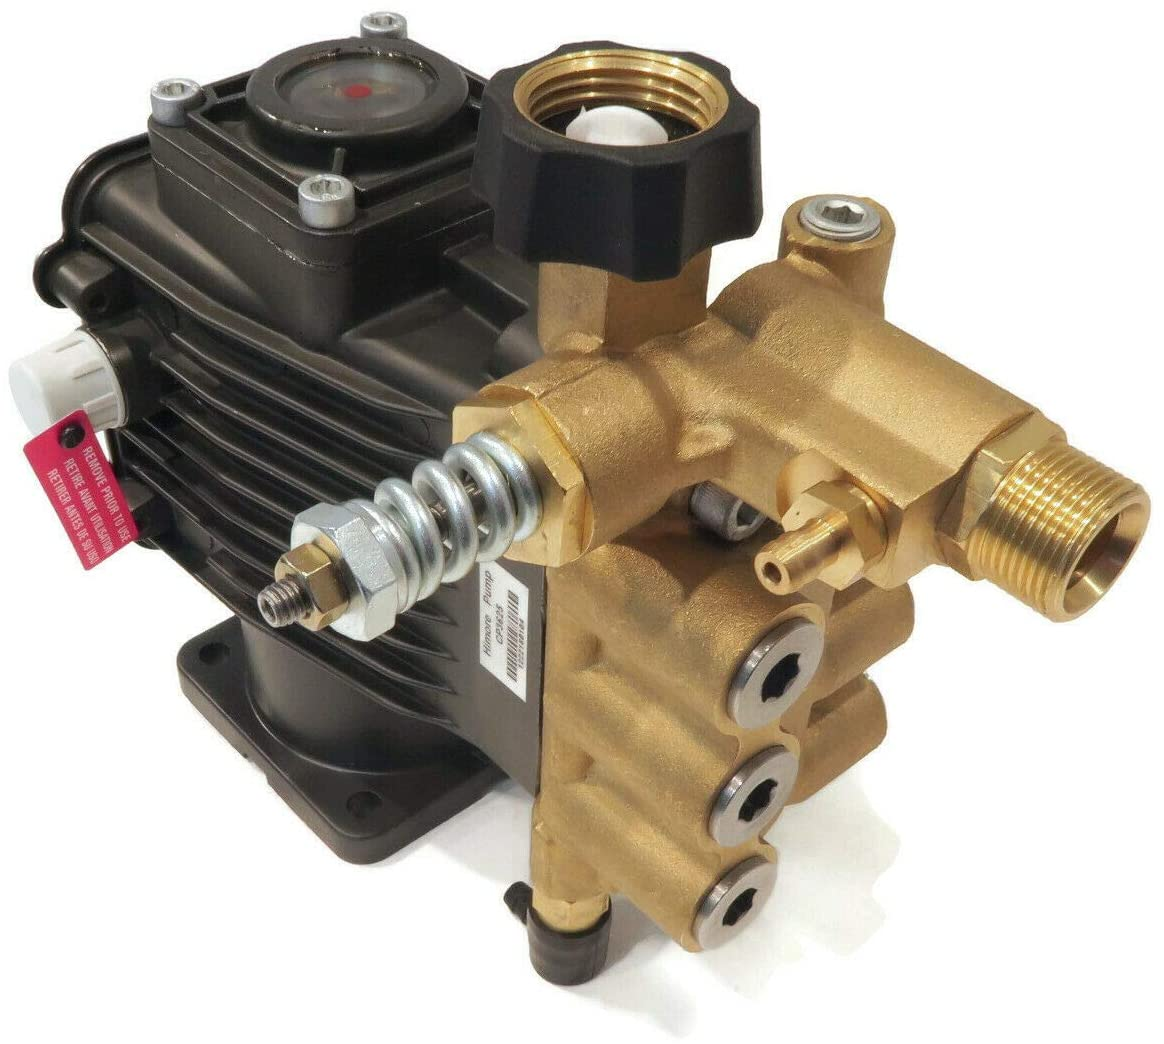 The ROP Shop 3600 PSI Pressure Washer Pump 2.5 GPM, 6.5 HP for Comet 6511.0015.00, 6511001500